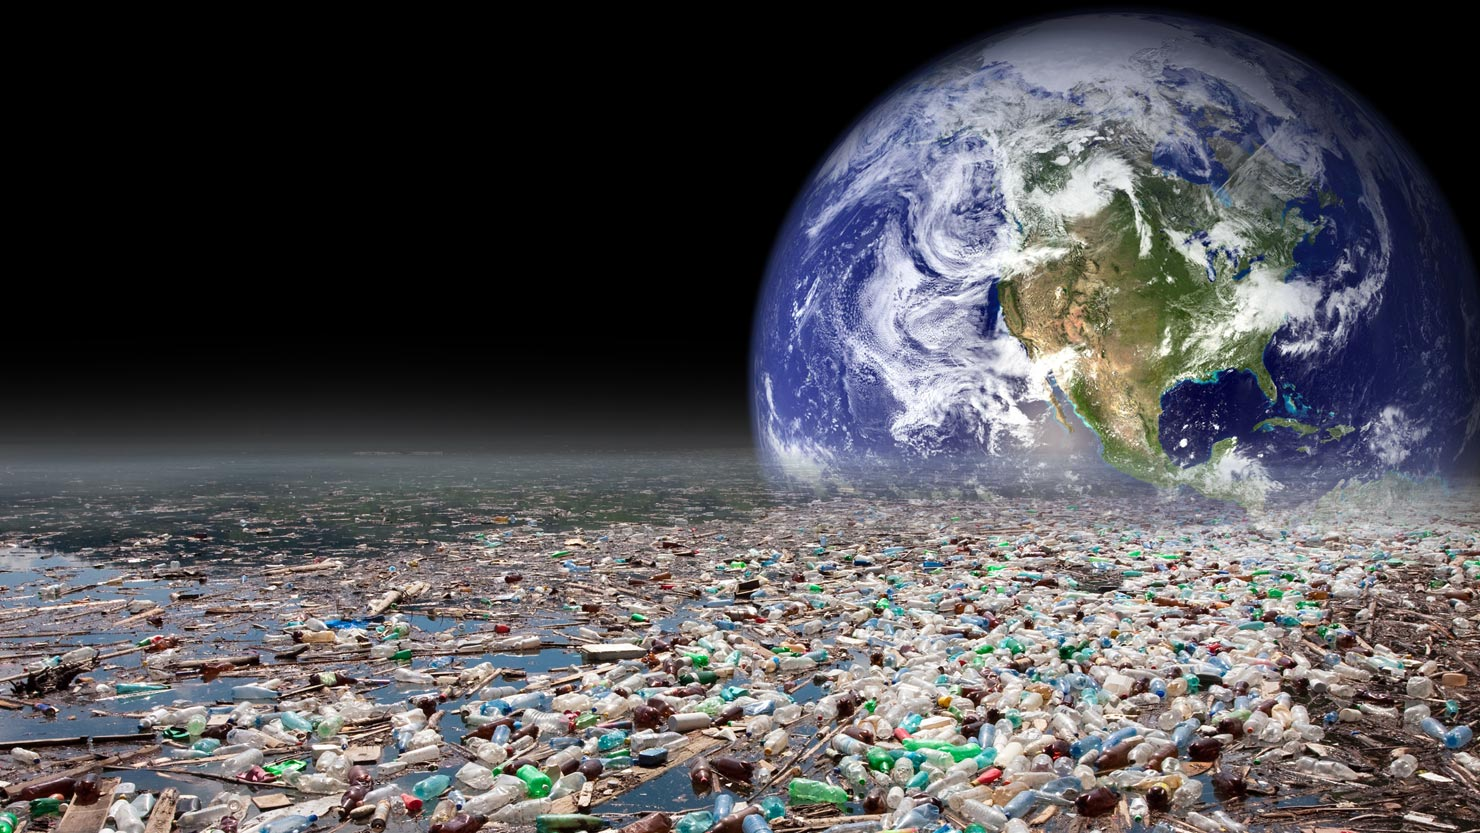 Plastics, the environment and human health: current consensus and future trends